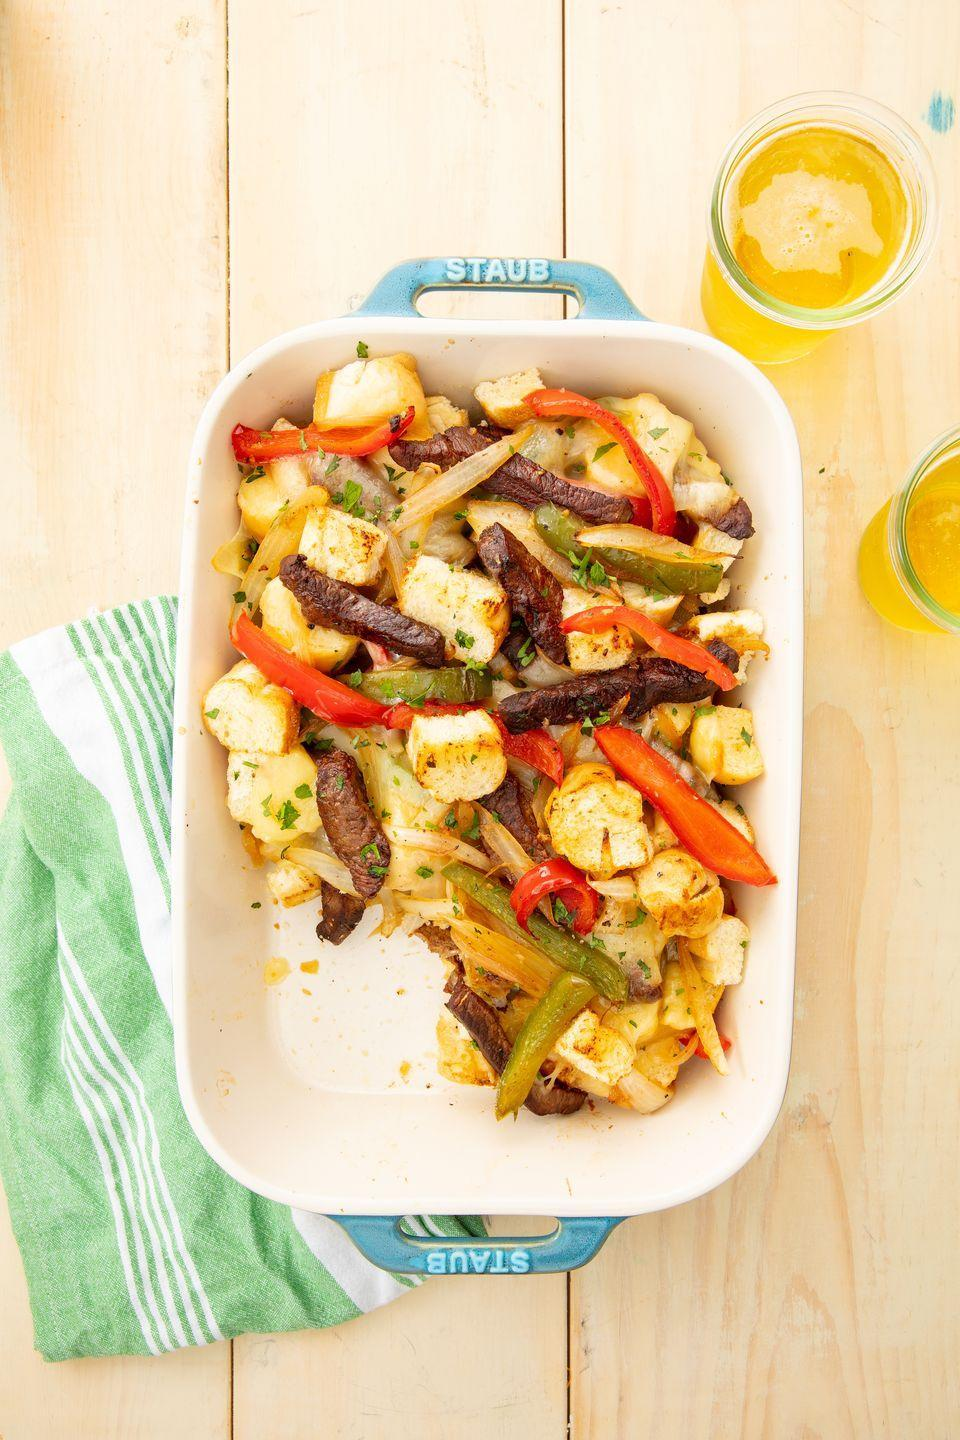 """<p>This casserole version of the legendary sandwich comes together sooo easily.</p><p>Get the recipe from <a href=""""https://www.delish.com/cooking/recipe-ideas/recipes/a55371/easy-philly-cheesesteak-casserole-recipe/"""" rel=""""nofollow noopener"""" target=""""_blank"""" data-ylk=""""slk:Delish"""" class=""""link rapid-noclick-resp"""">Delish</a>.</p>"""